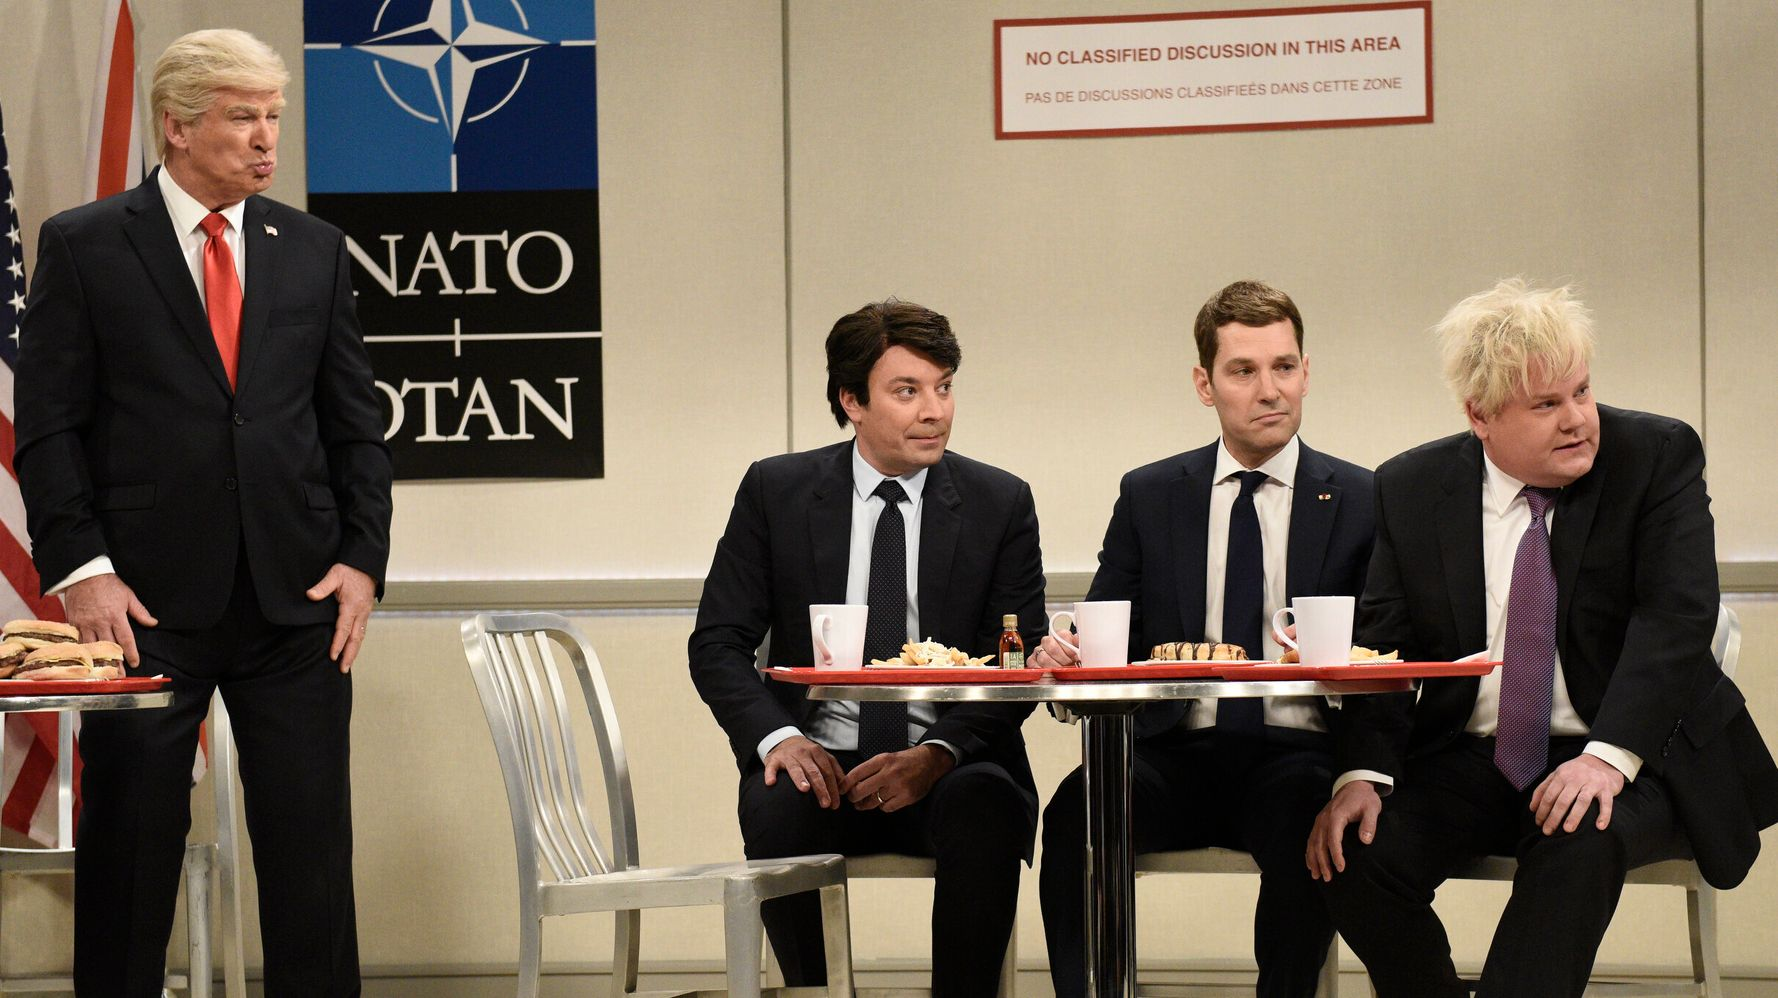 Westlake Legal Group 5ded0cf0240000e0035a2a60 Paul Rudd, Jimmy Fallon And James Corden Are The Mean Girls Of NATO On 'SNL'